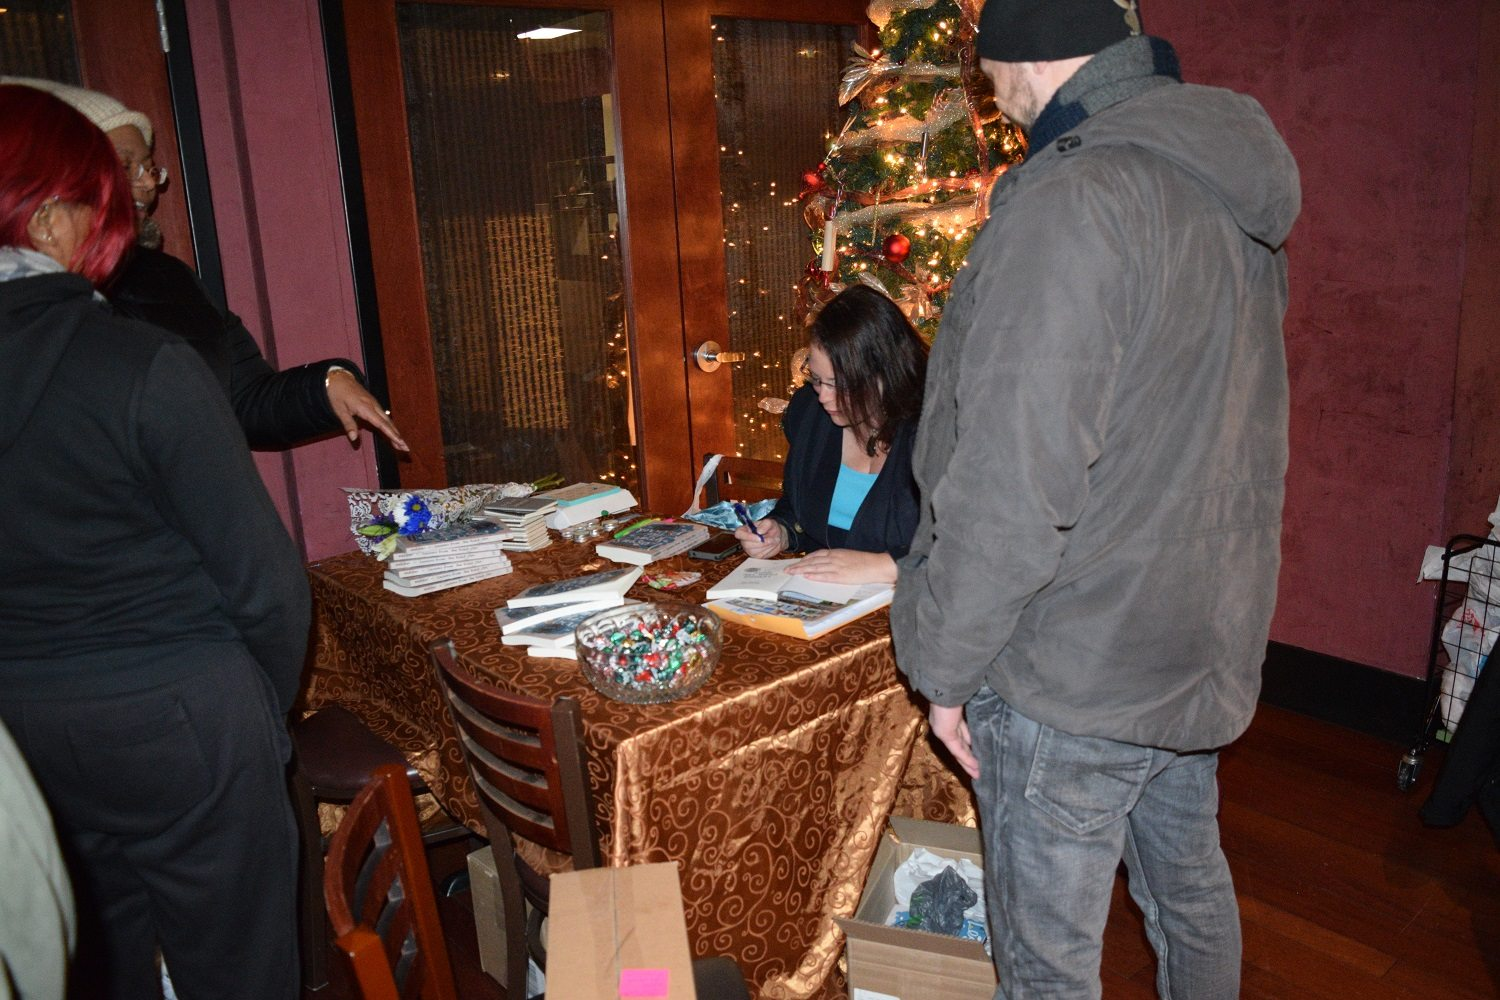 Signing a book - Just when you thought it was all over! Book Release Party! Thank you!